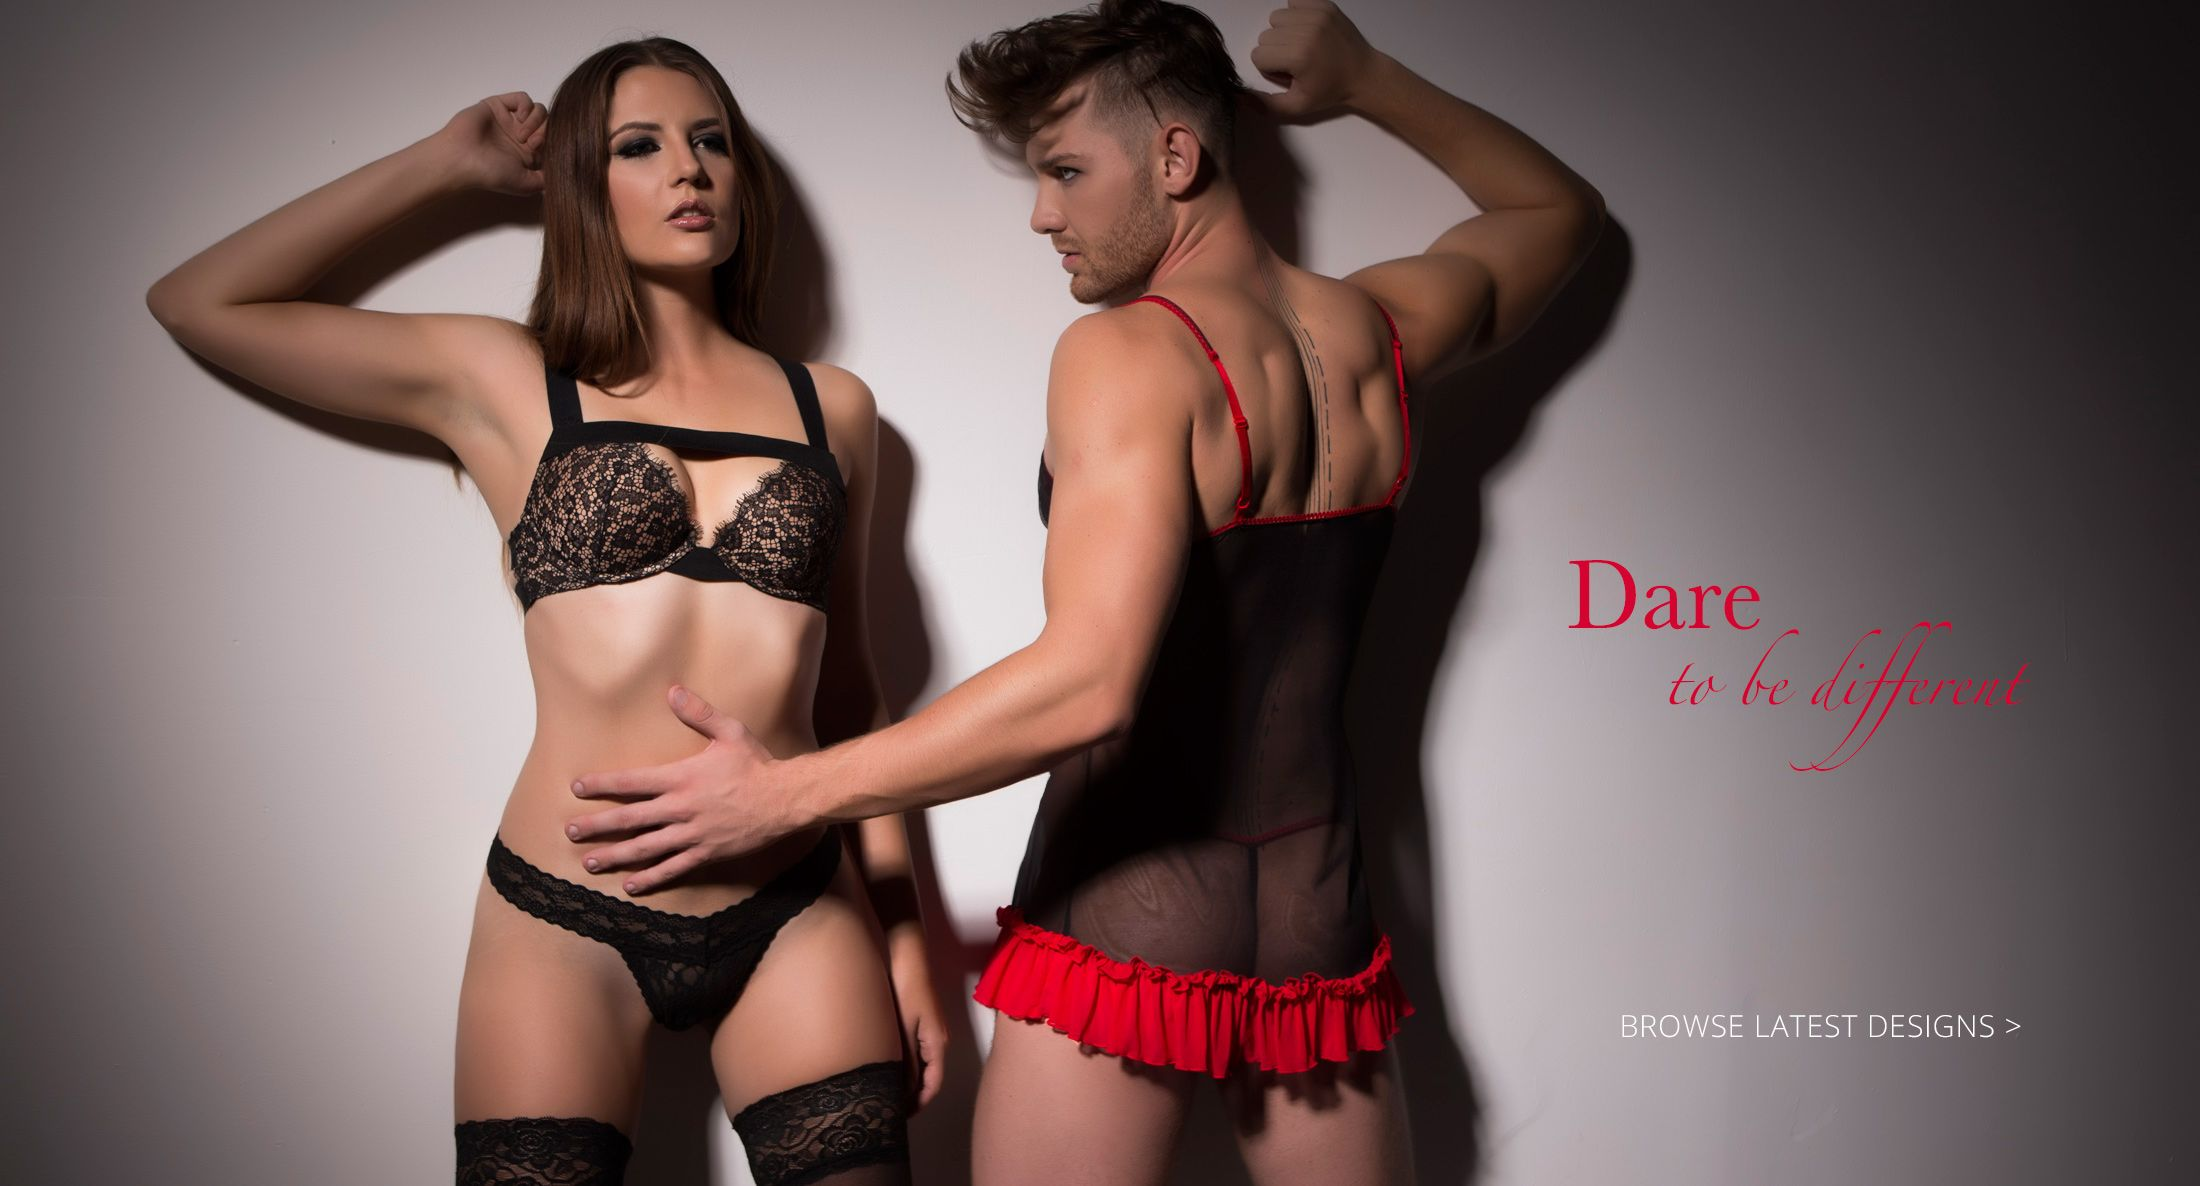 Erotic lingerie for men